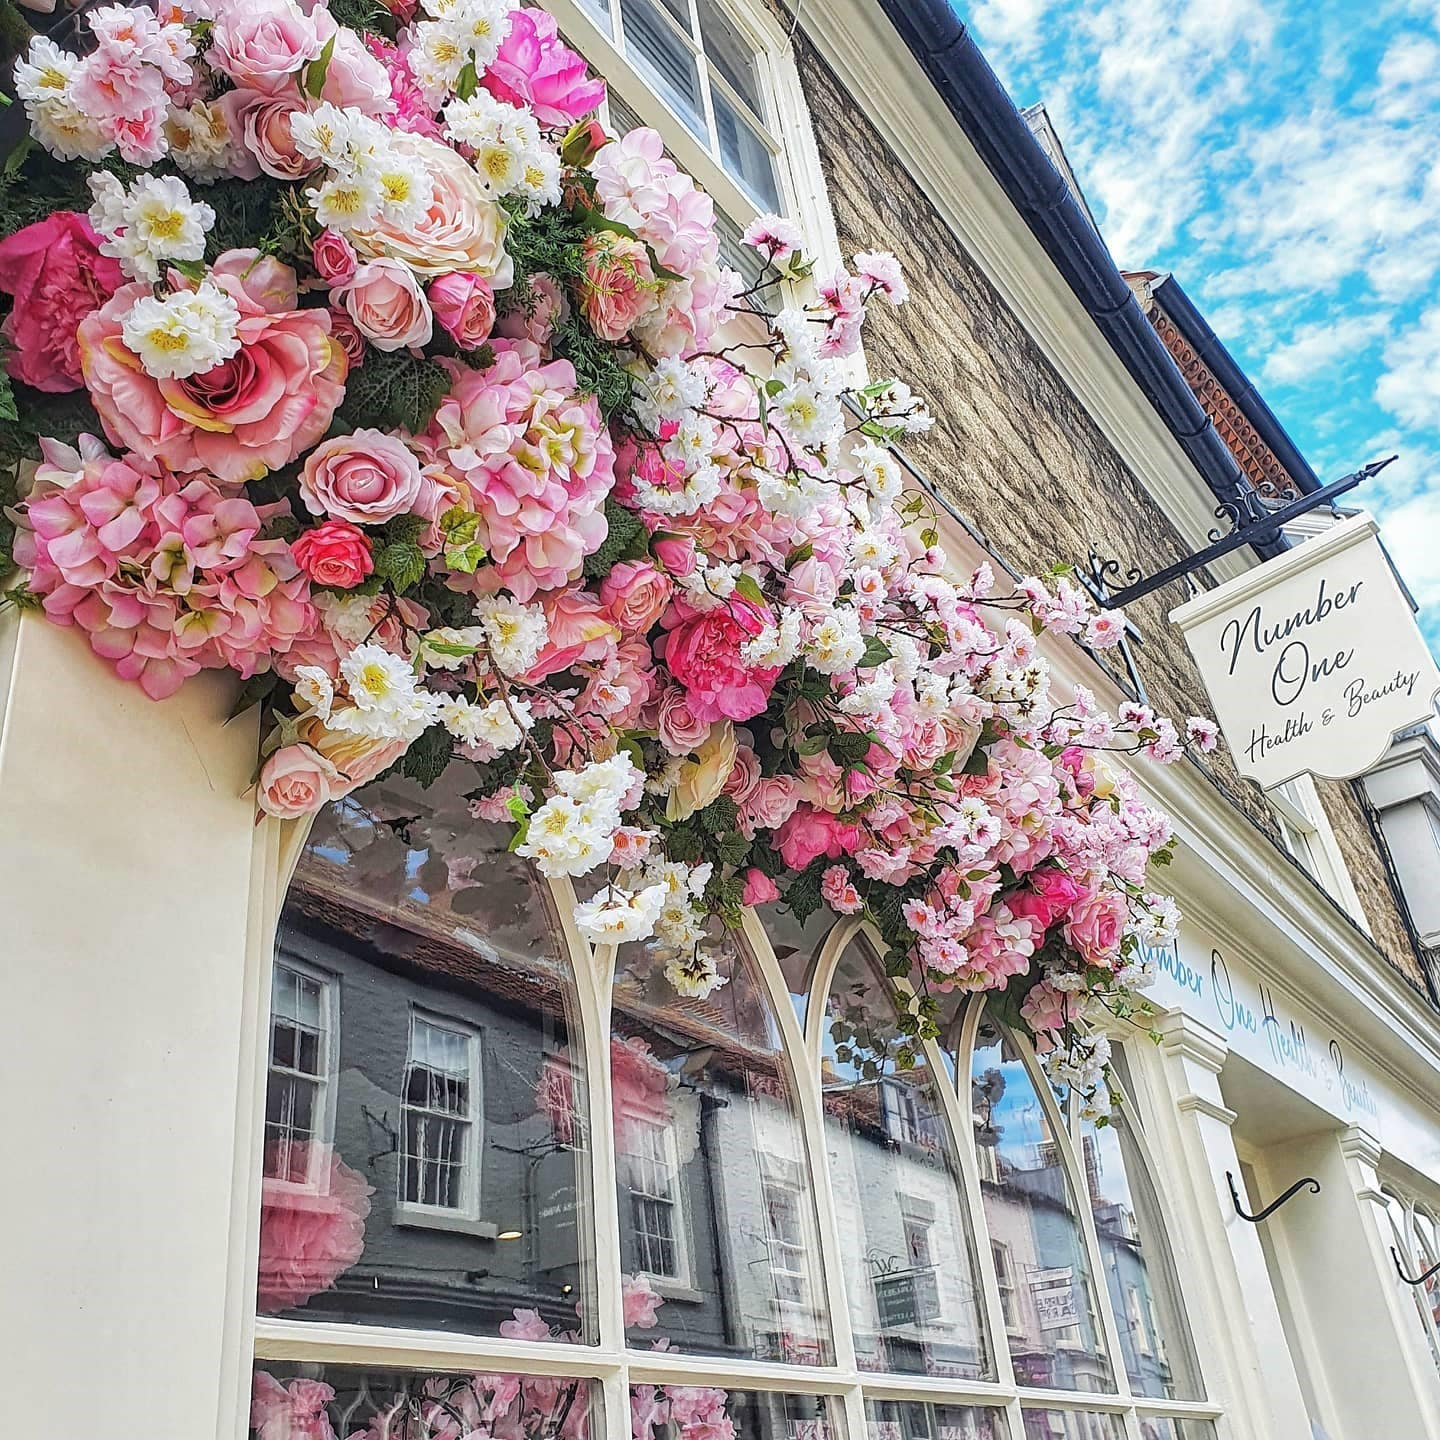 Possibilities for the outside of your business. Flowers will always attract attention!